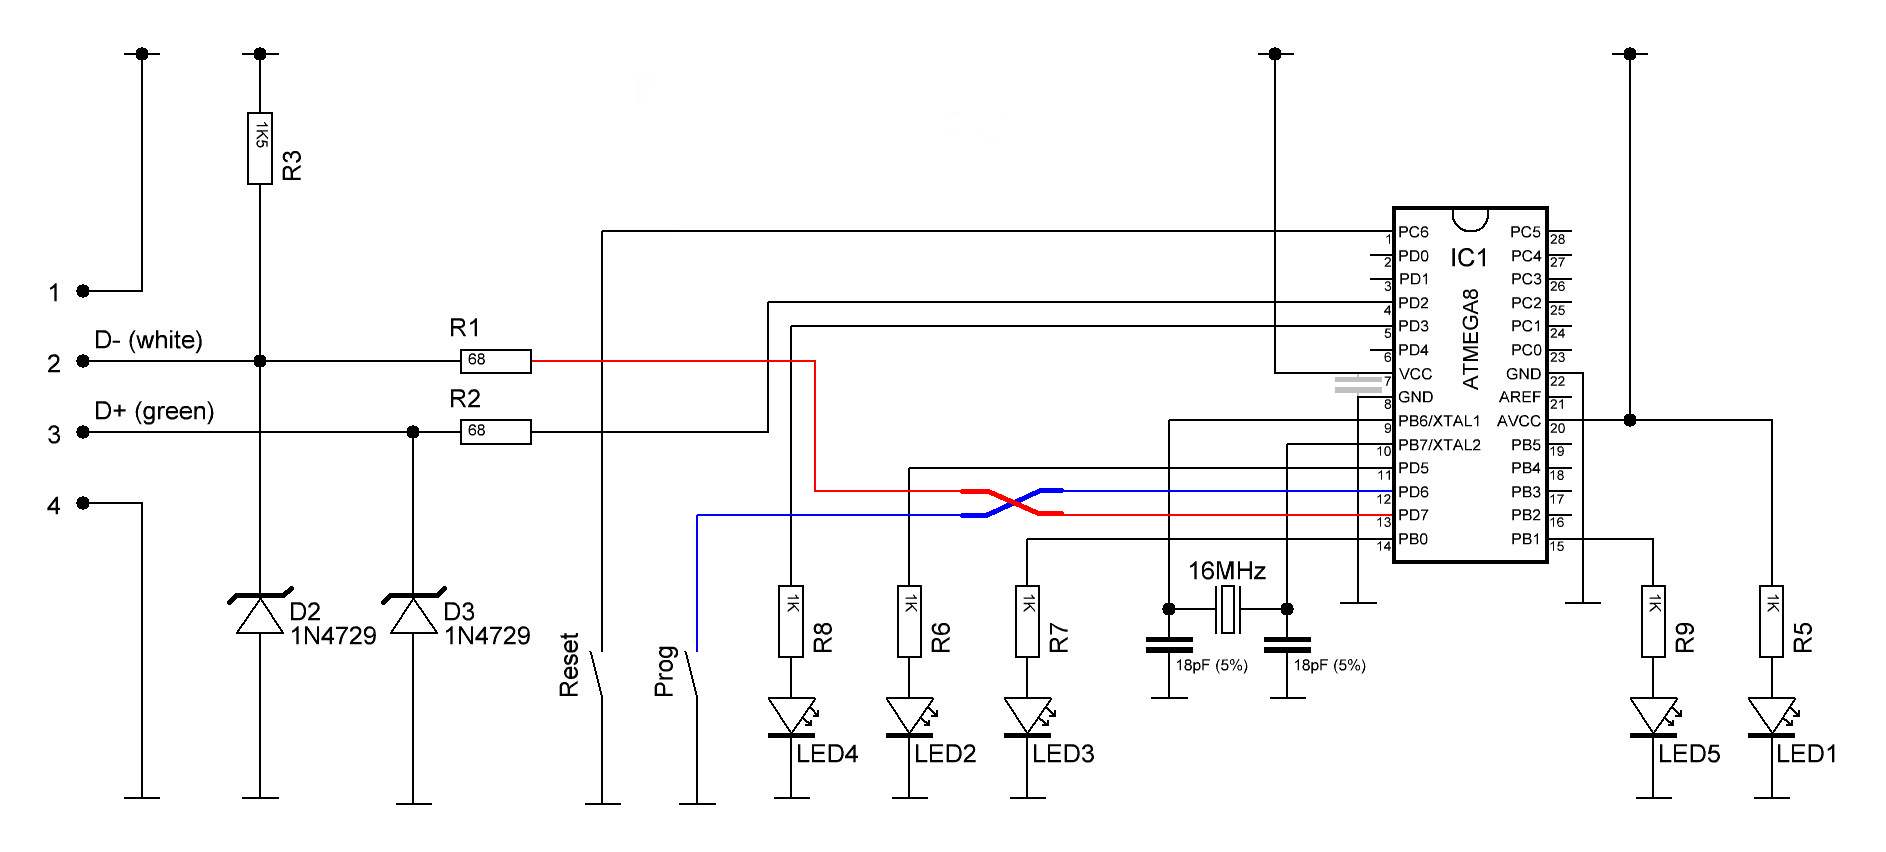 rs232 wiring diagram images fuel gauge wiring diagram besides dmx led controller wiring diagram